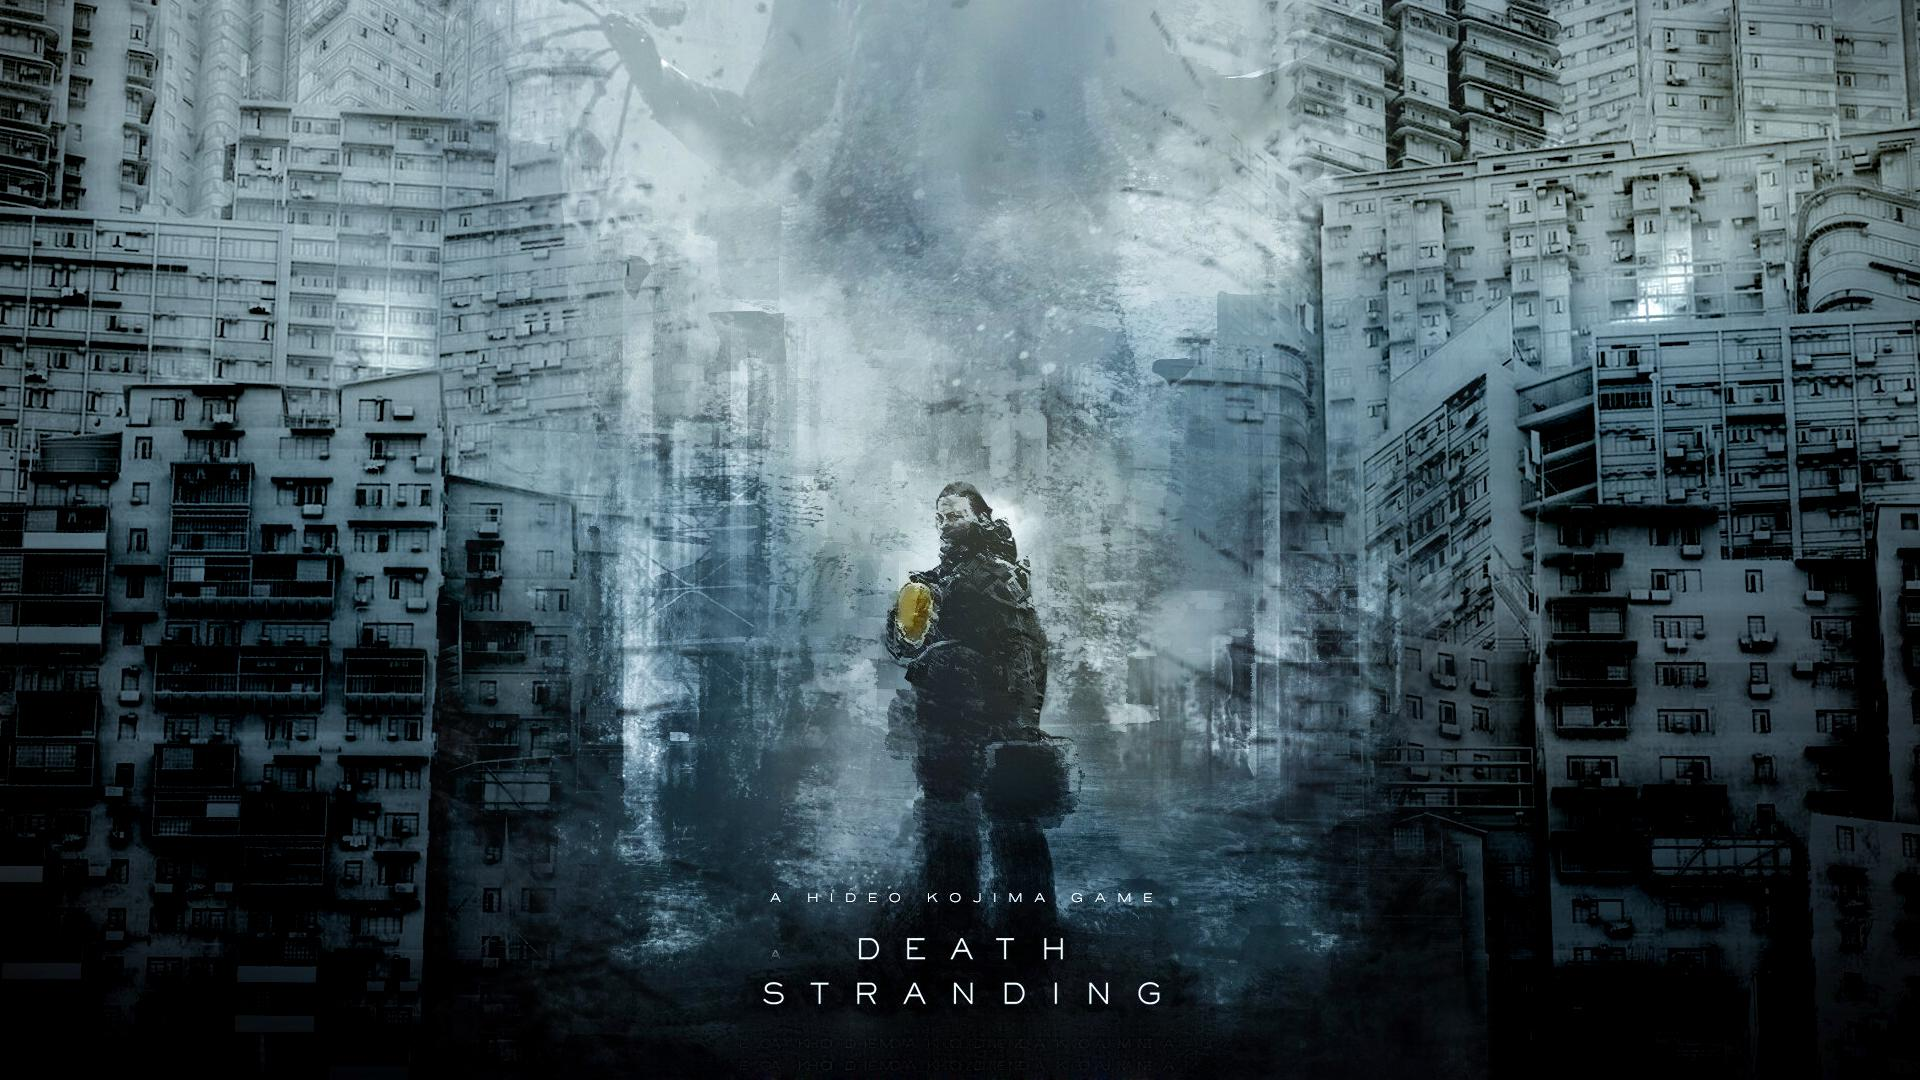 Death Stranding 1920X1080 Wallpapers - Top Free Death Stranding 1920X1080 Backgrounds - WallpaperAccess